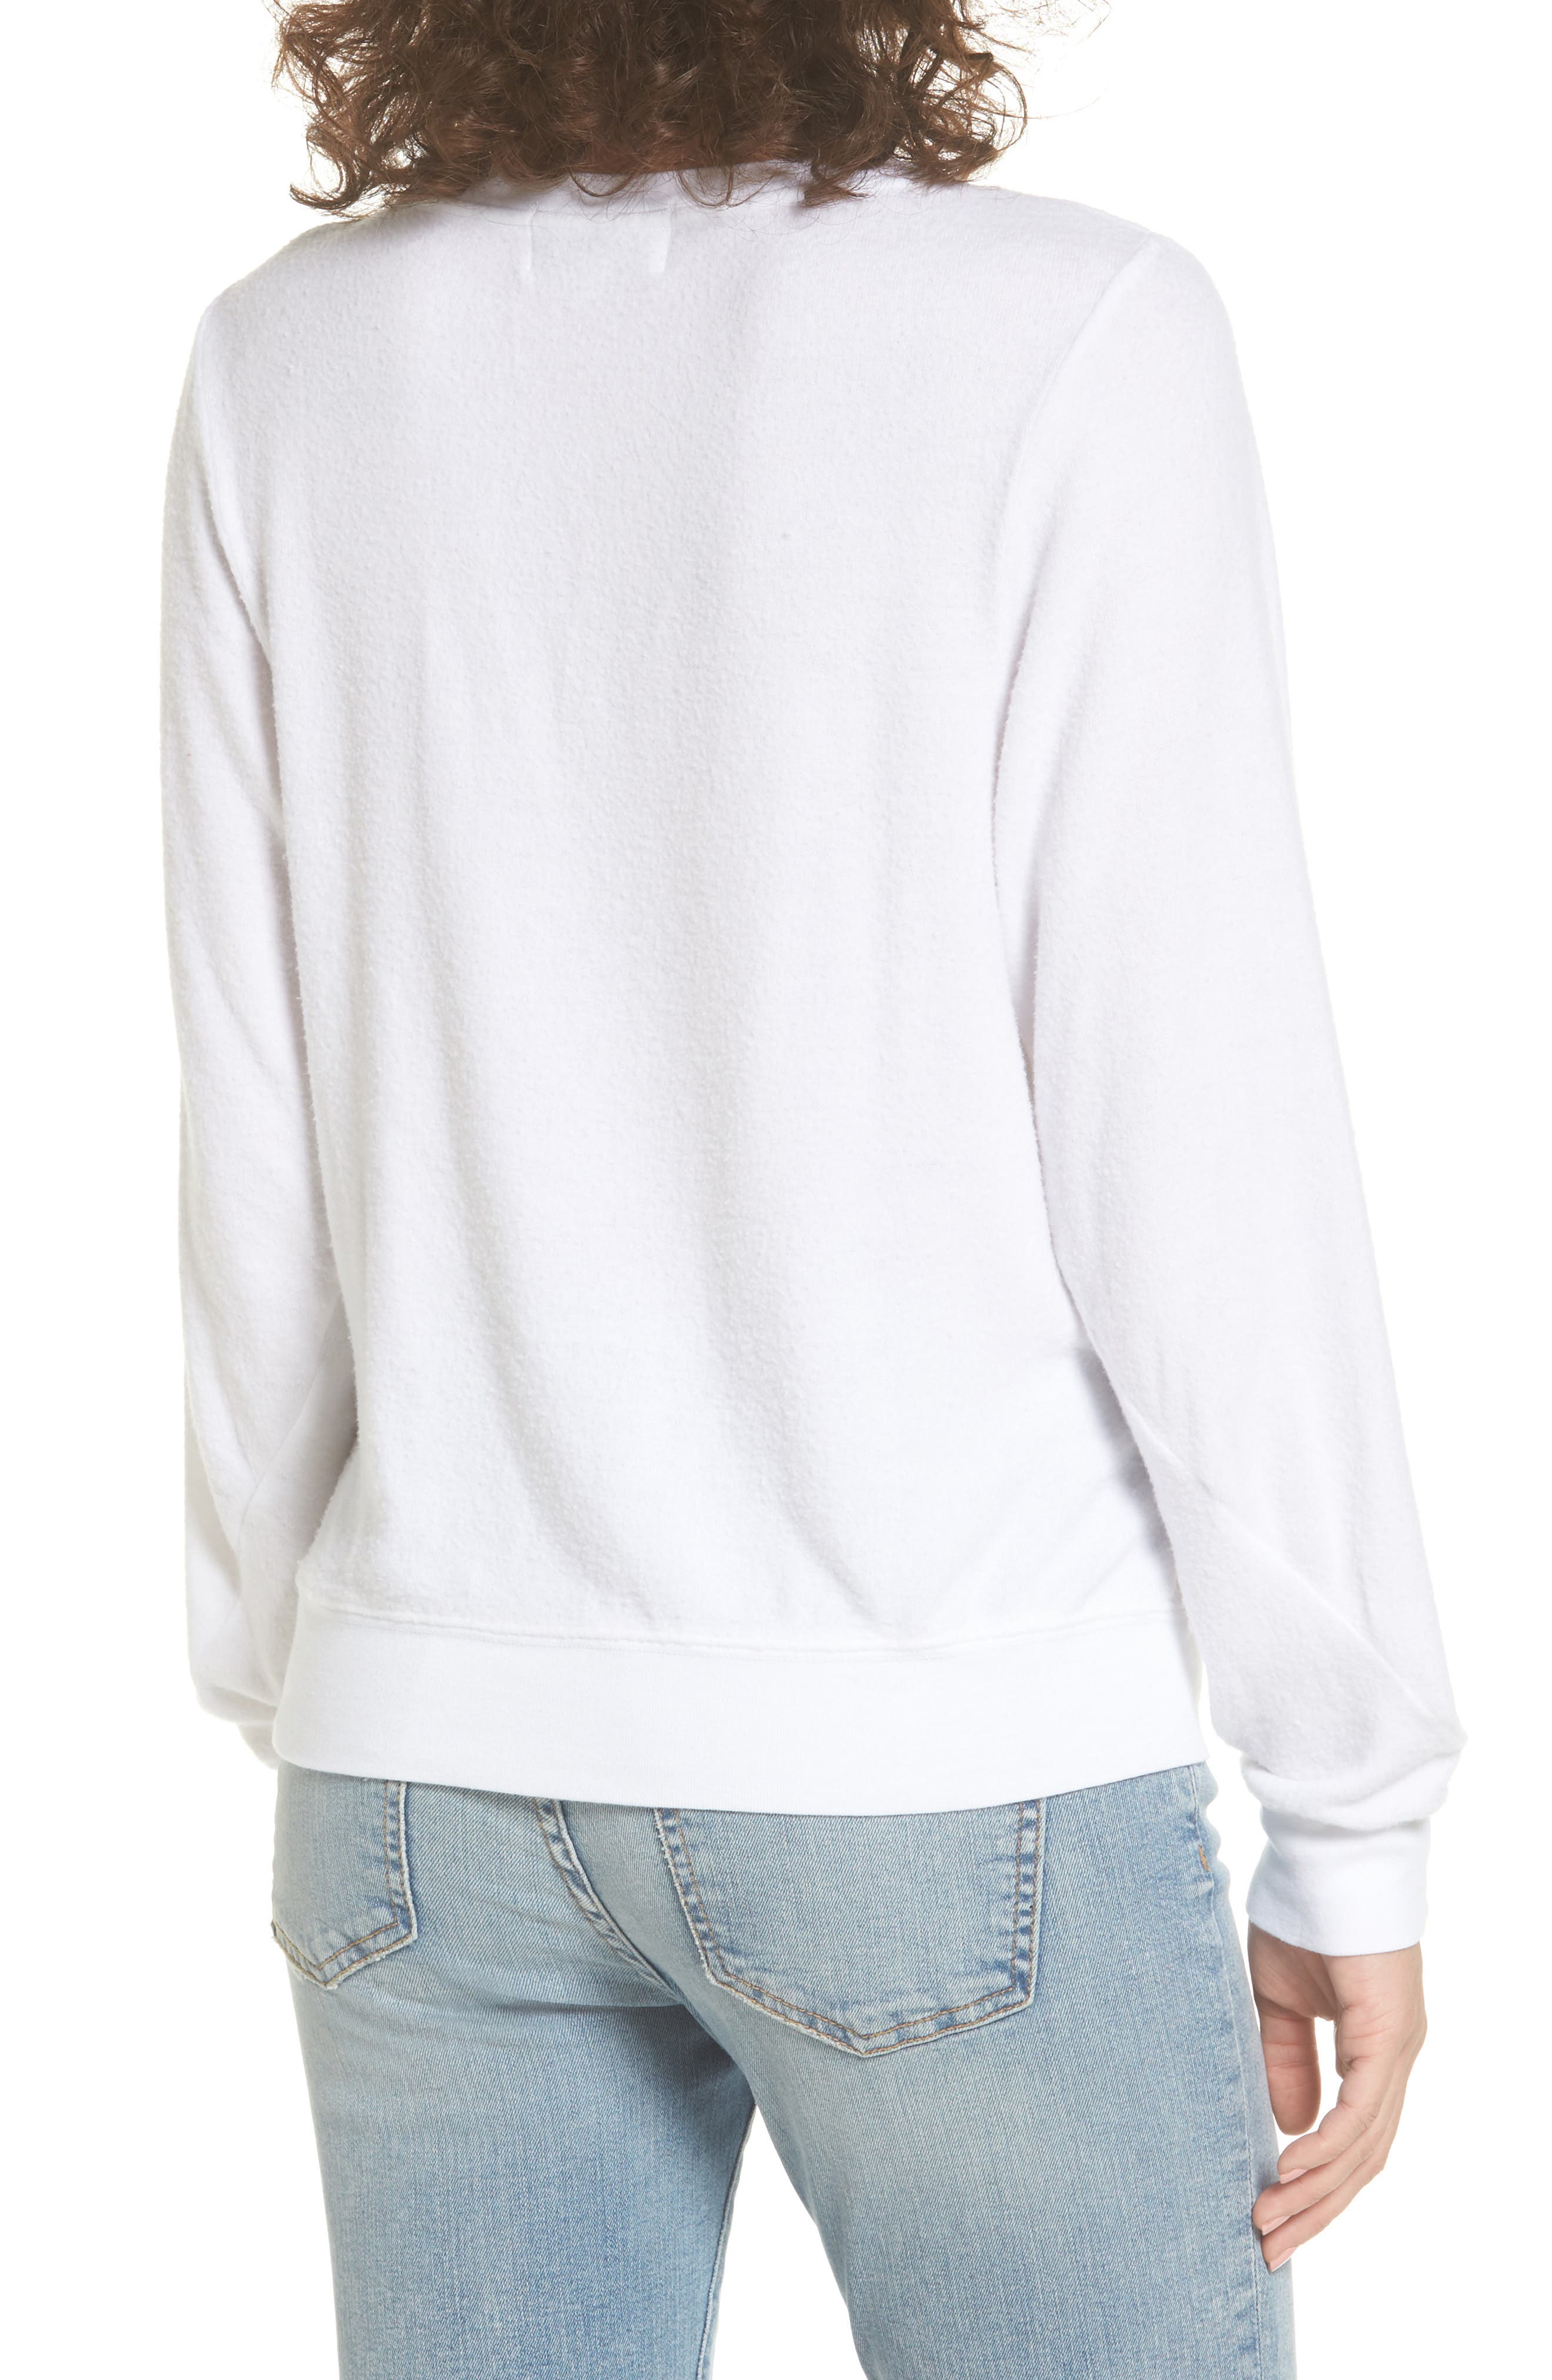 Nasty Woman Pullover,                             Alternate thumbnail 2, color,                             White